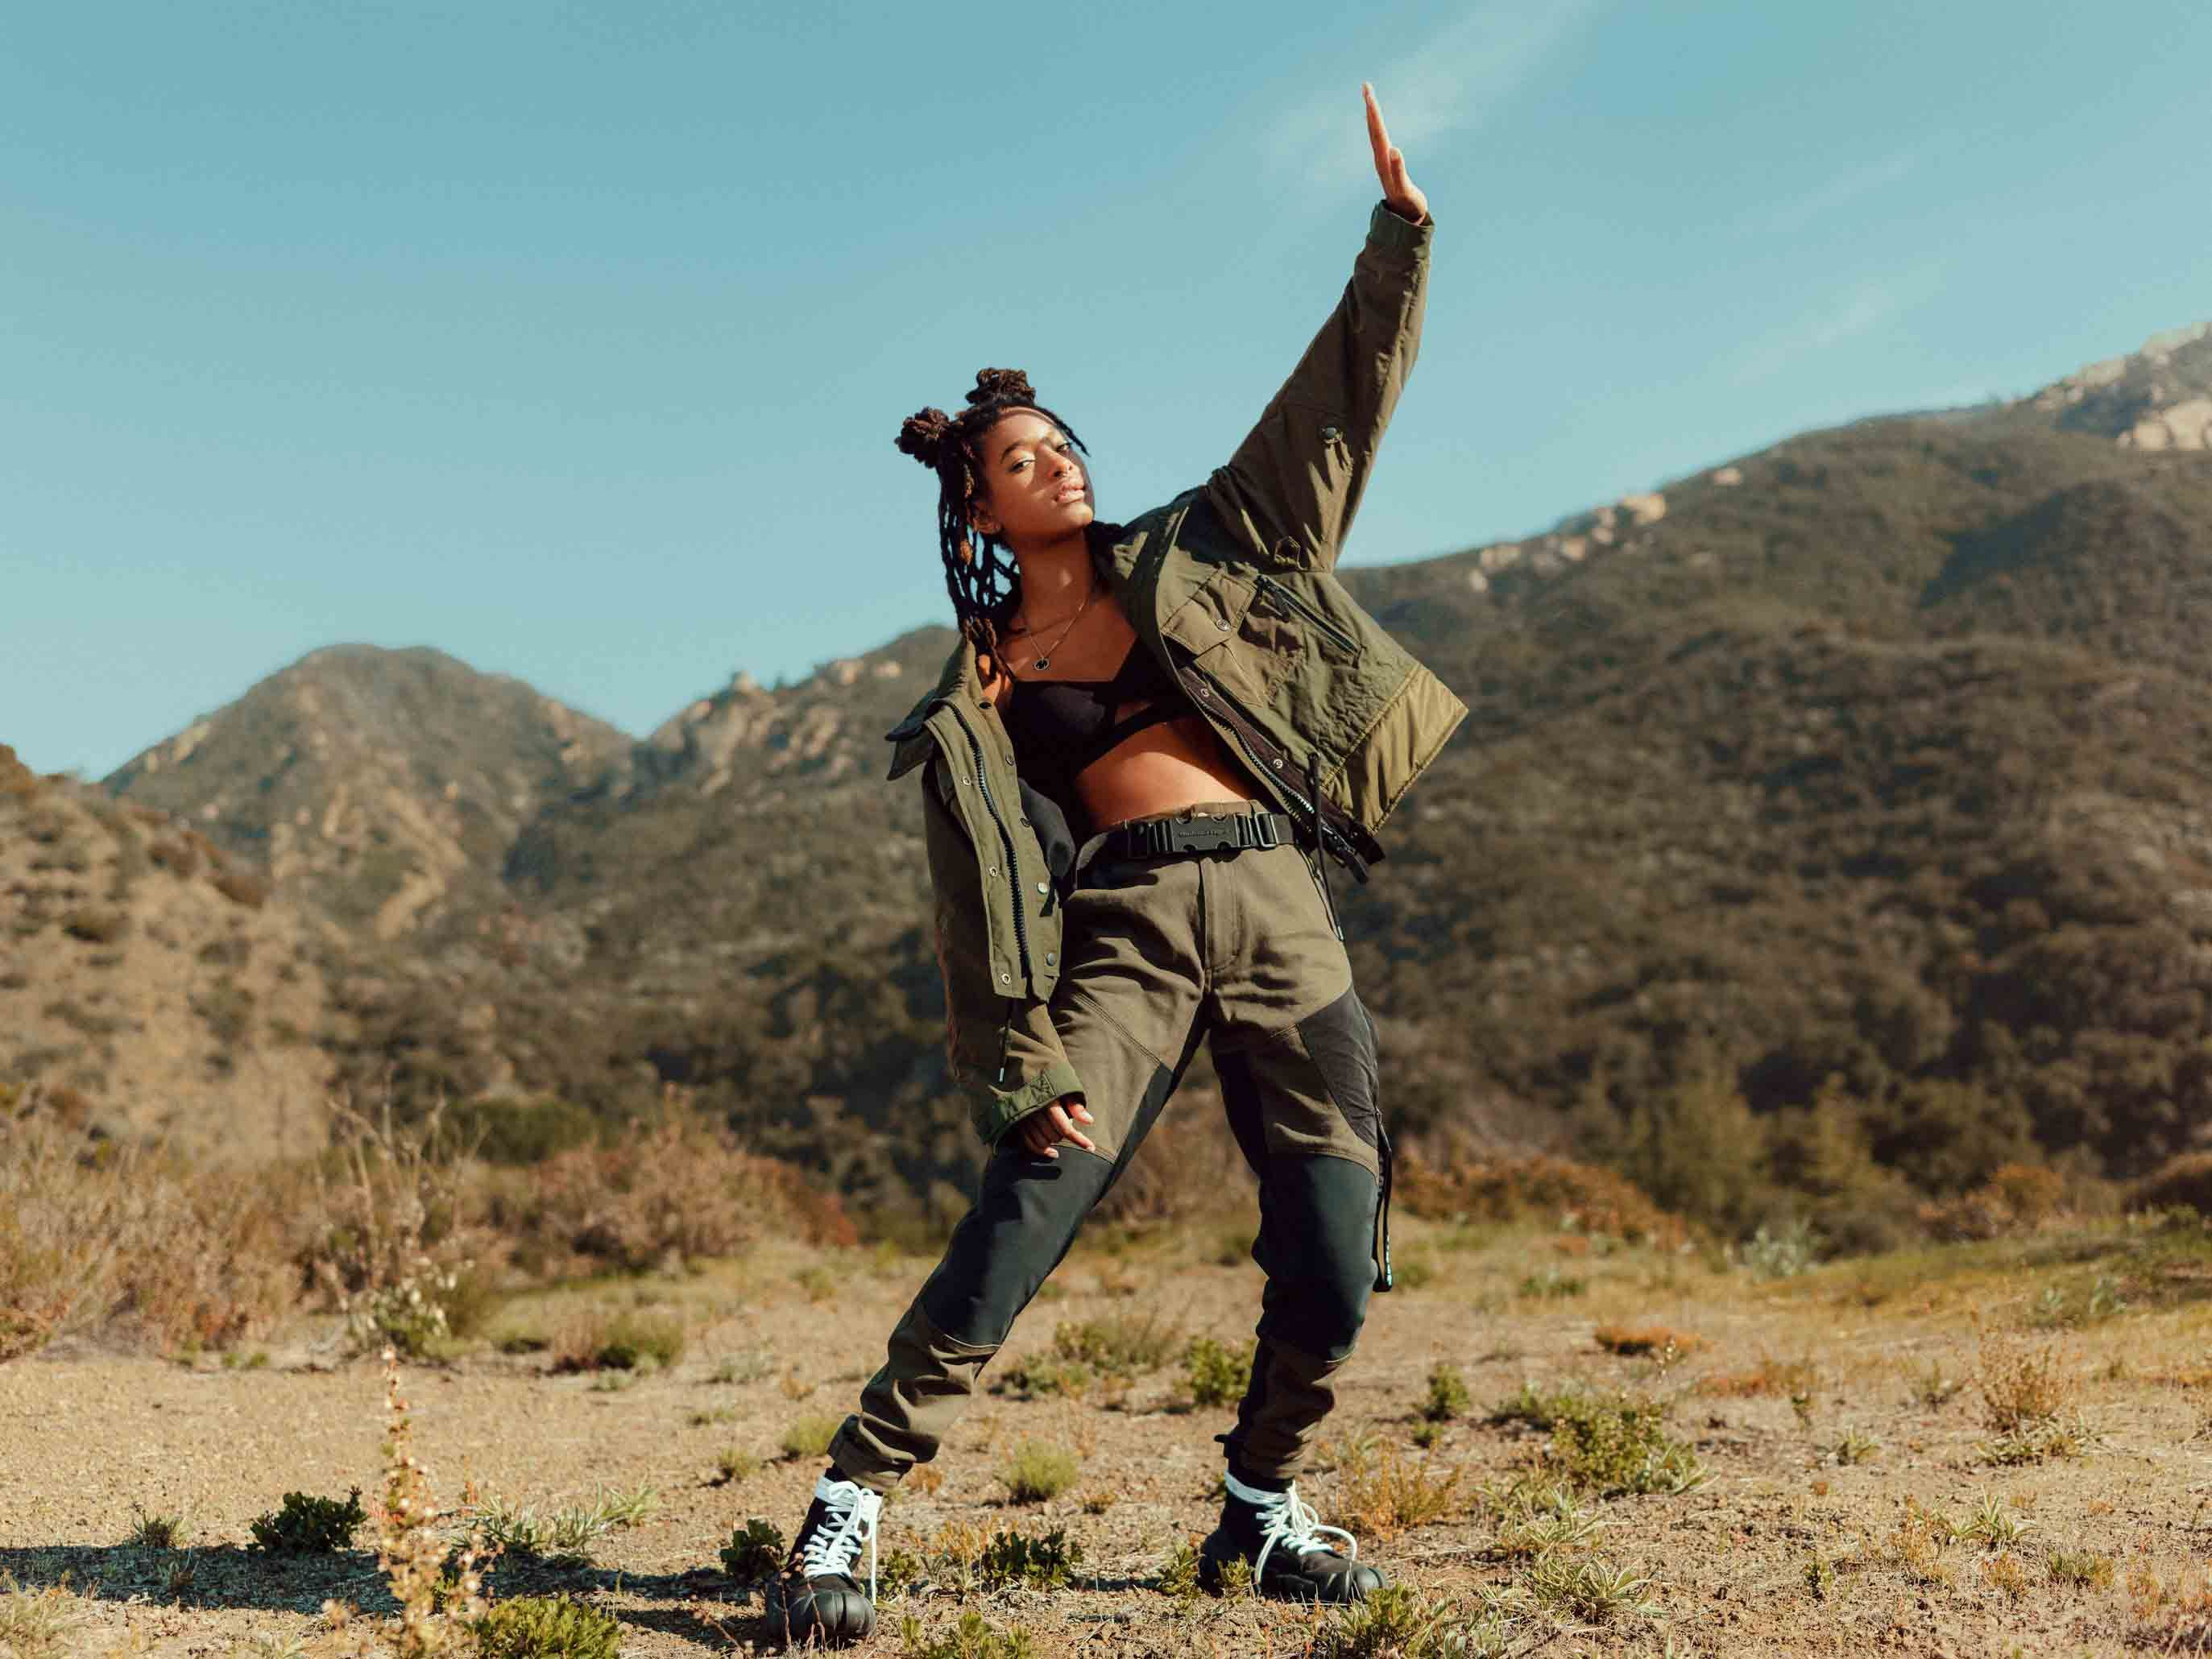 Onitsuka Tiger Brand Ambassador Willow Smith Fronts New FW20 Campaign 29